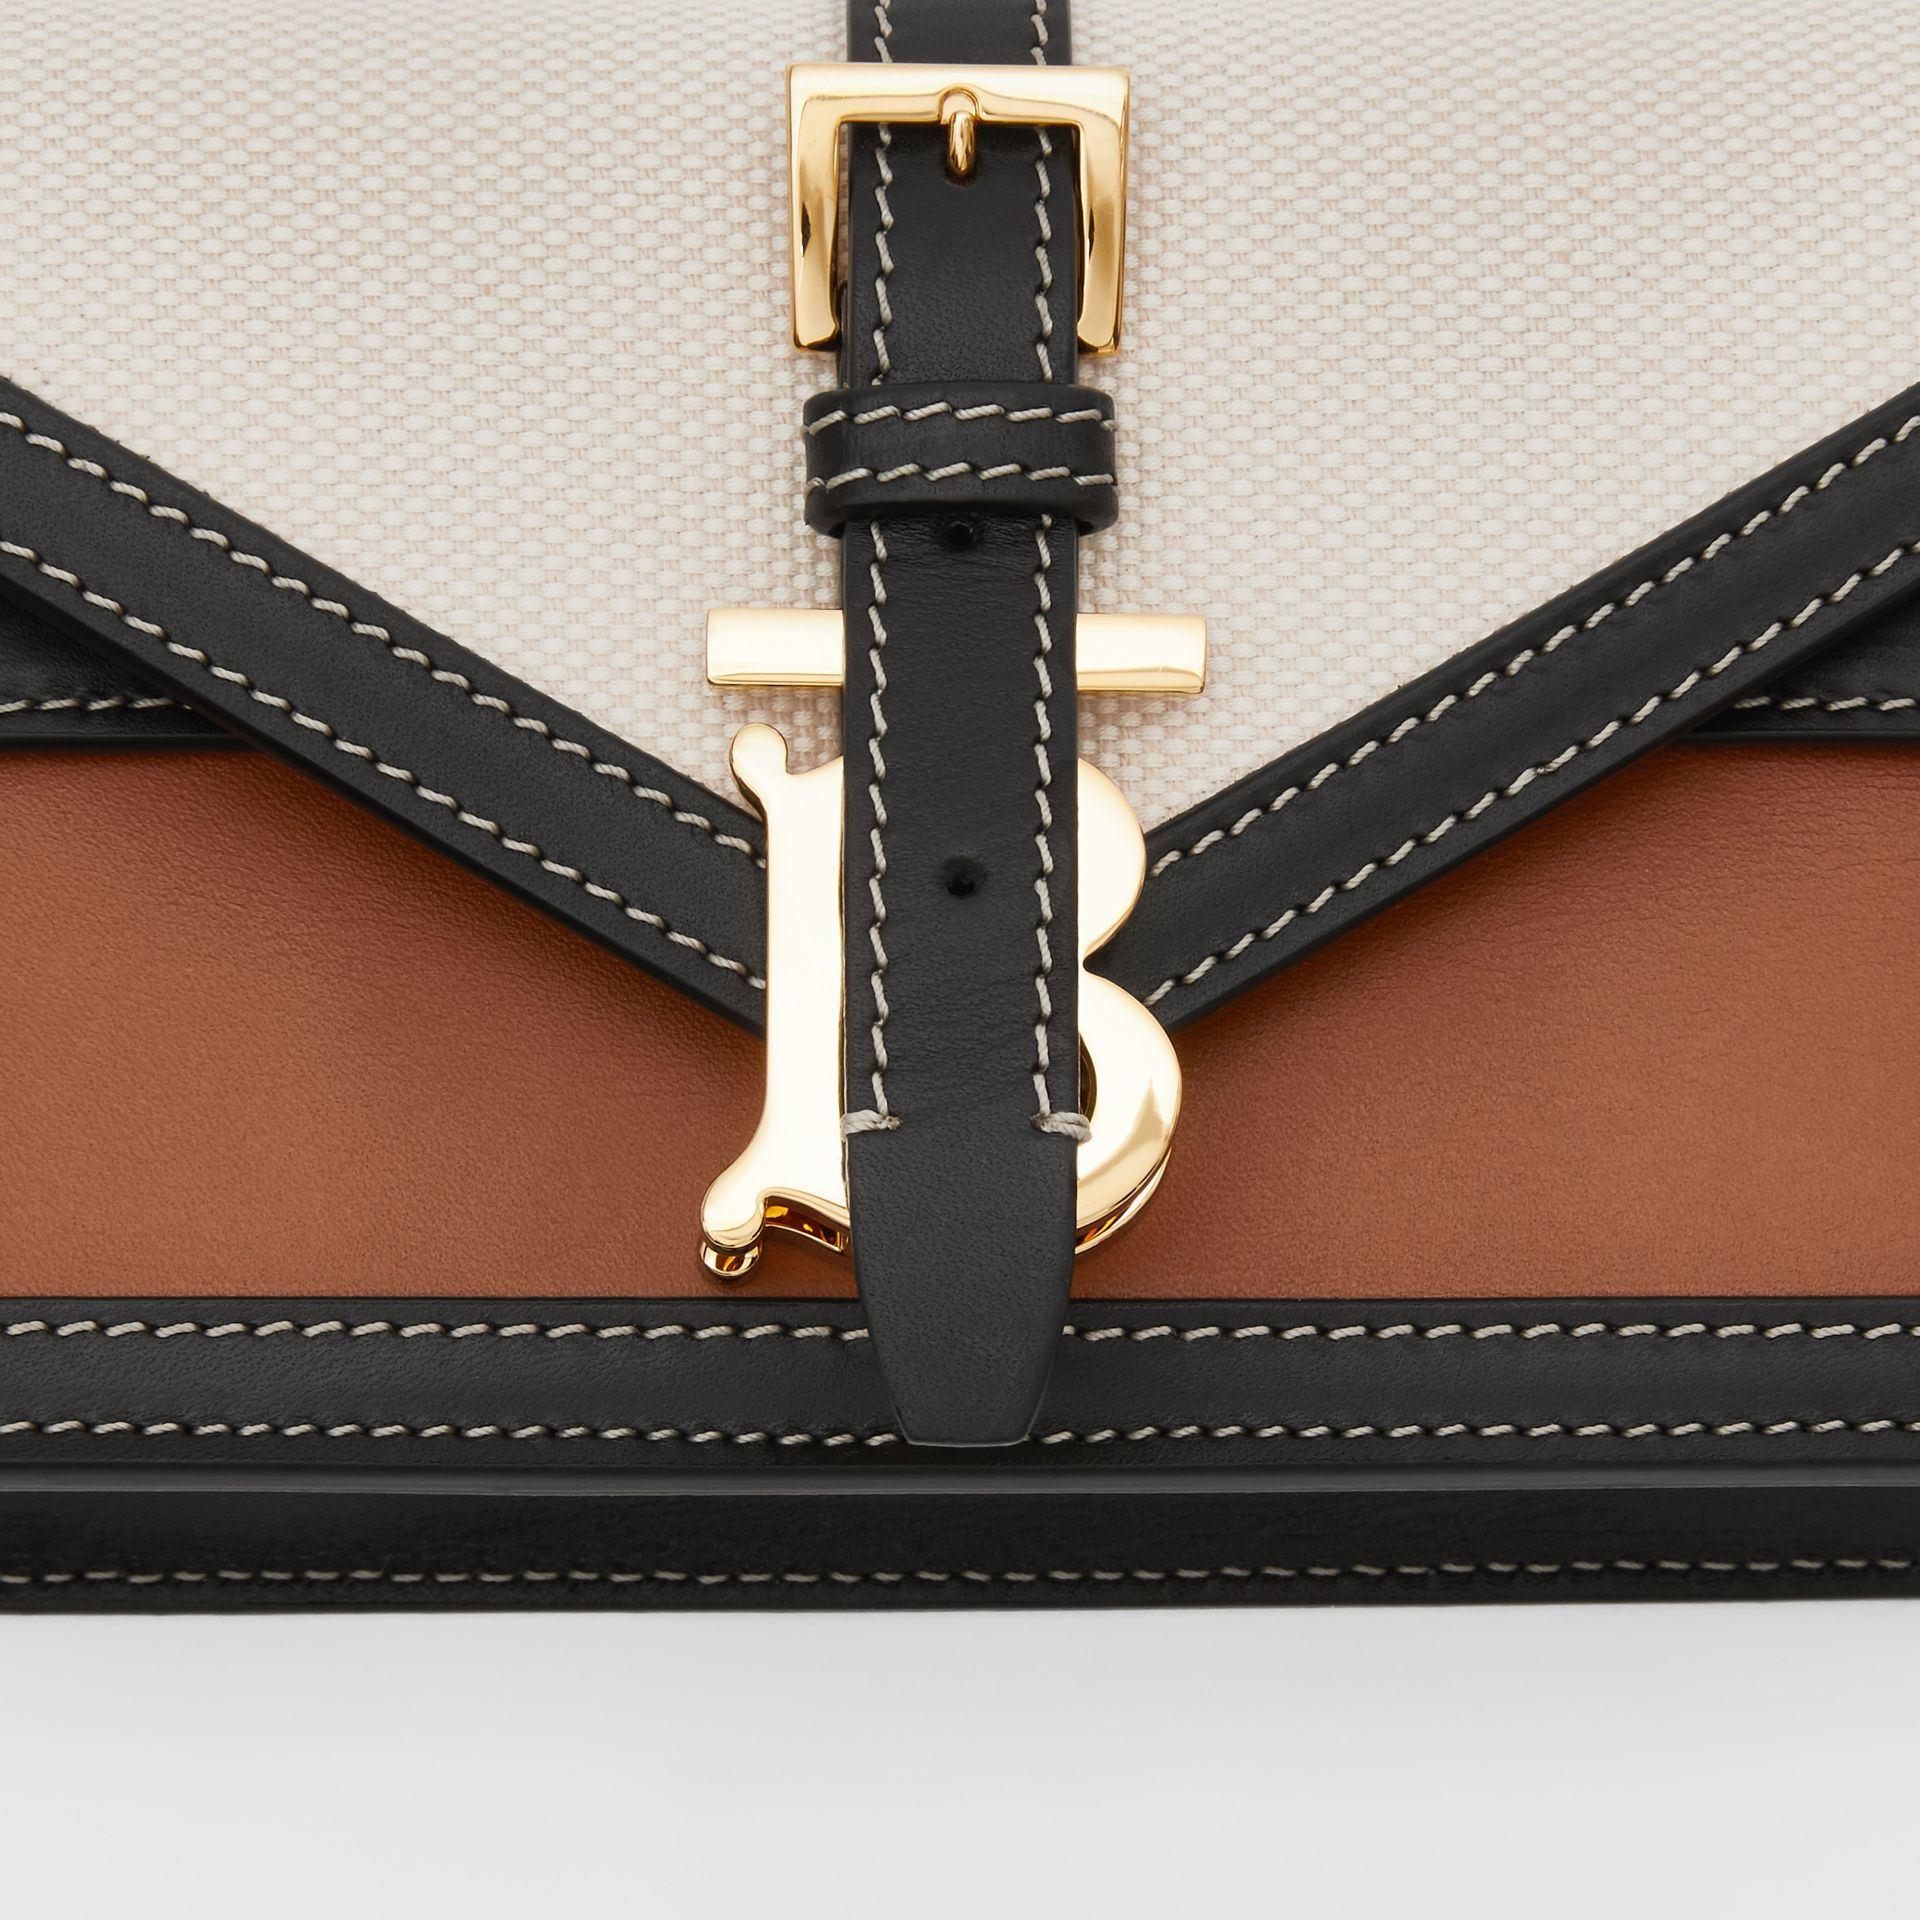 Mini Canvas and Leather TB Envelope Clutch in Tan - Women | Burberry Singapore - gallery image 1